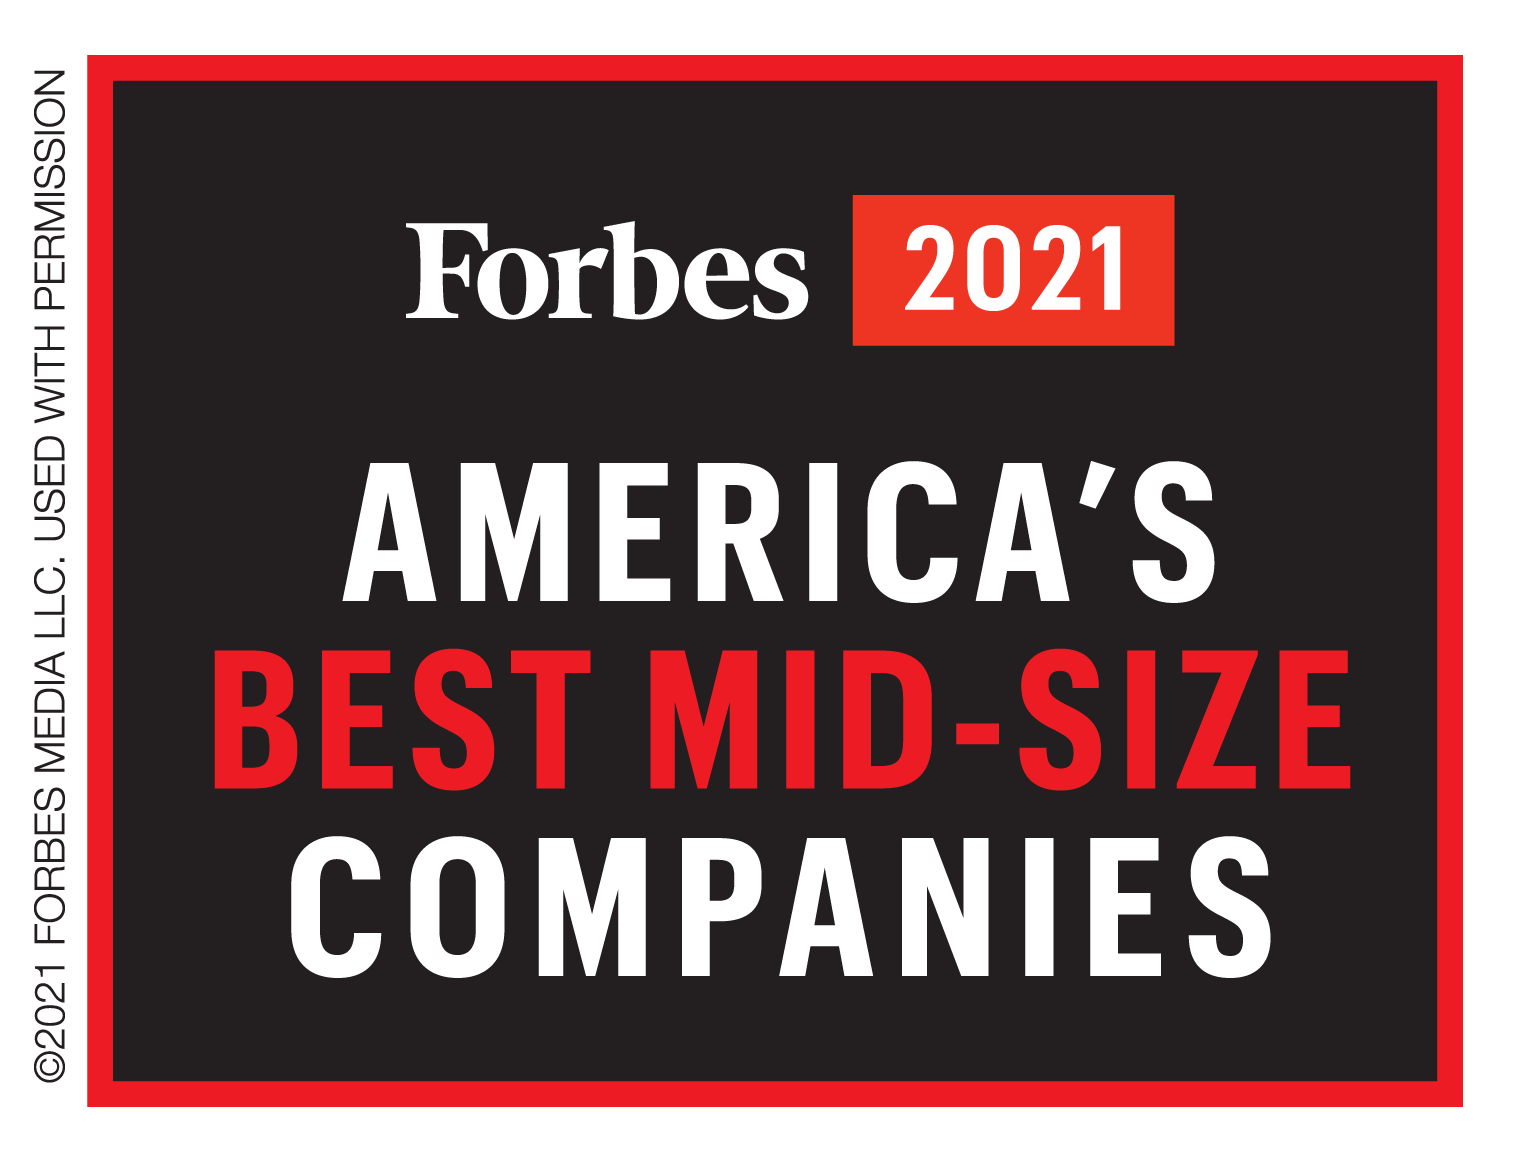 Forbes2021AmericasBestMid-SizeCompanies